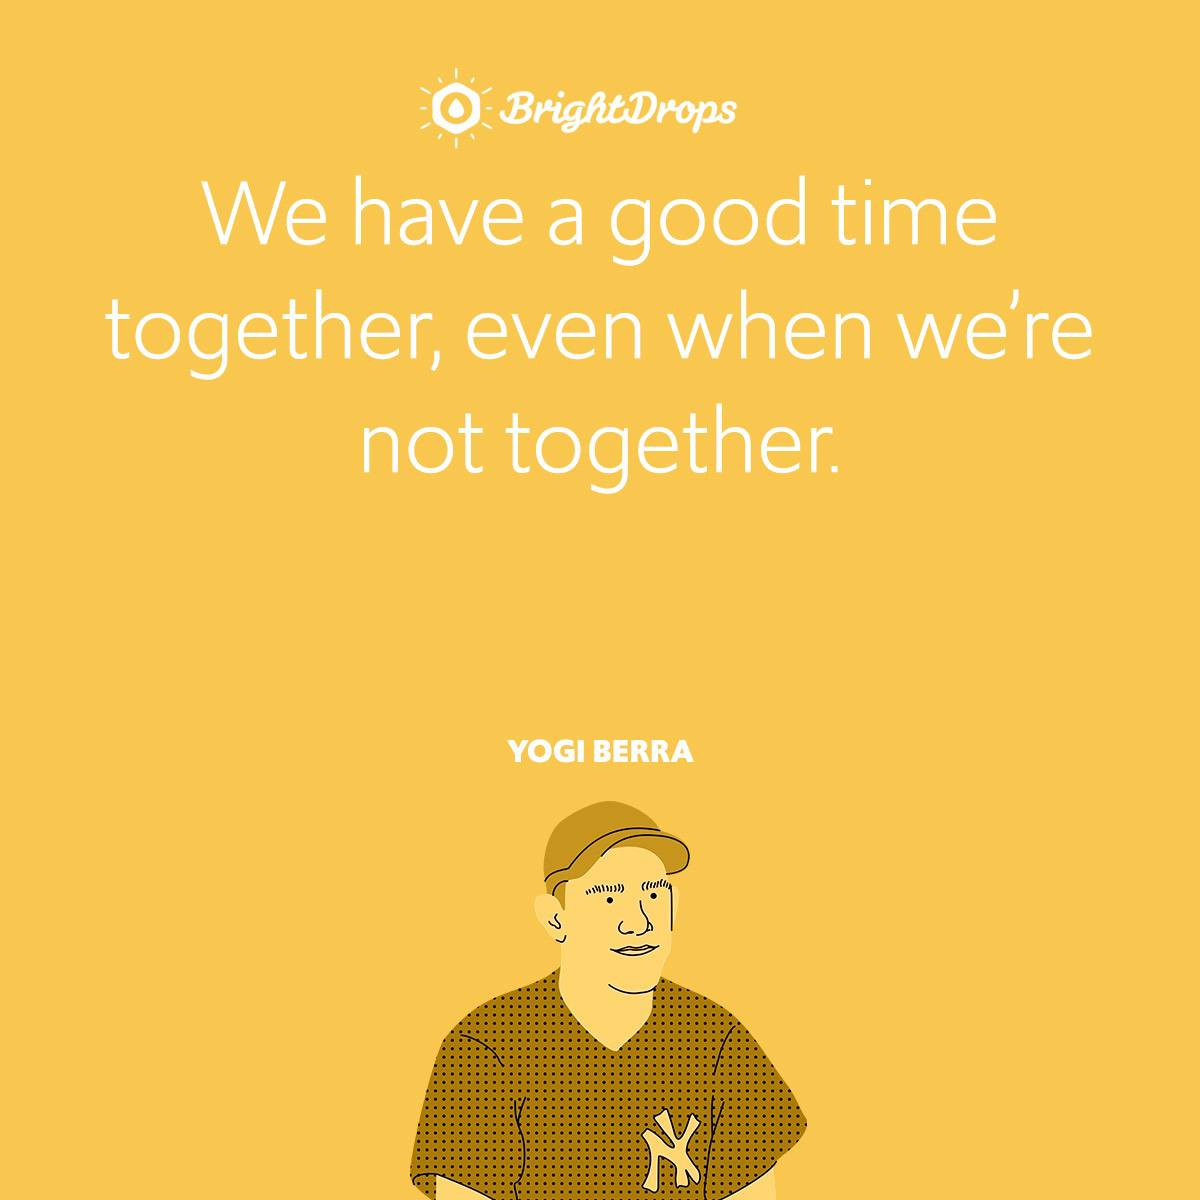 We have a good time together, even when we're not together.